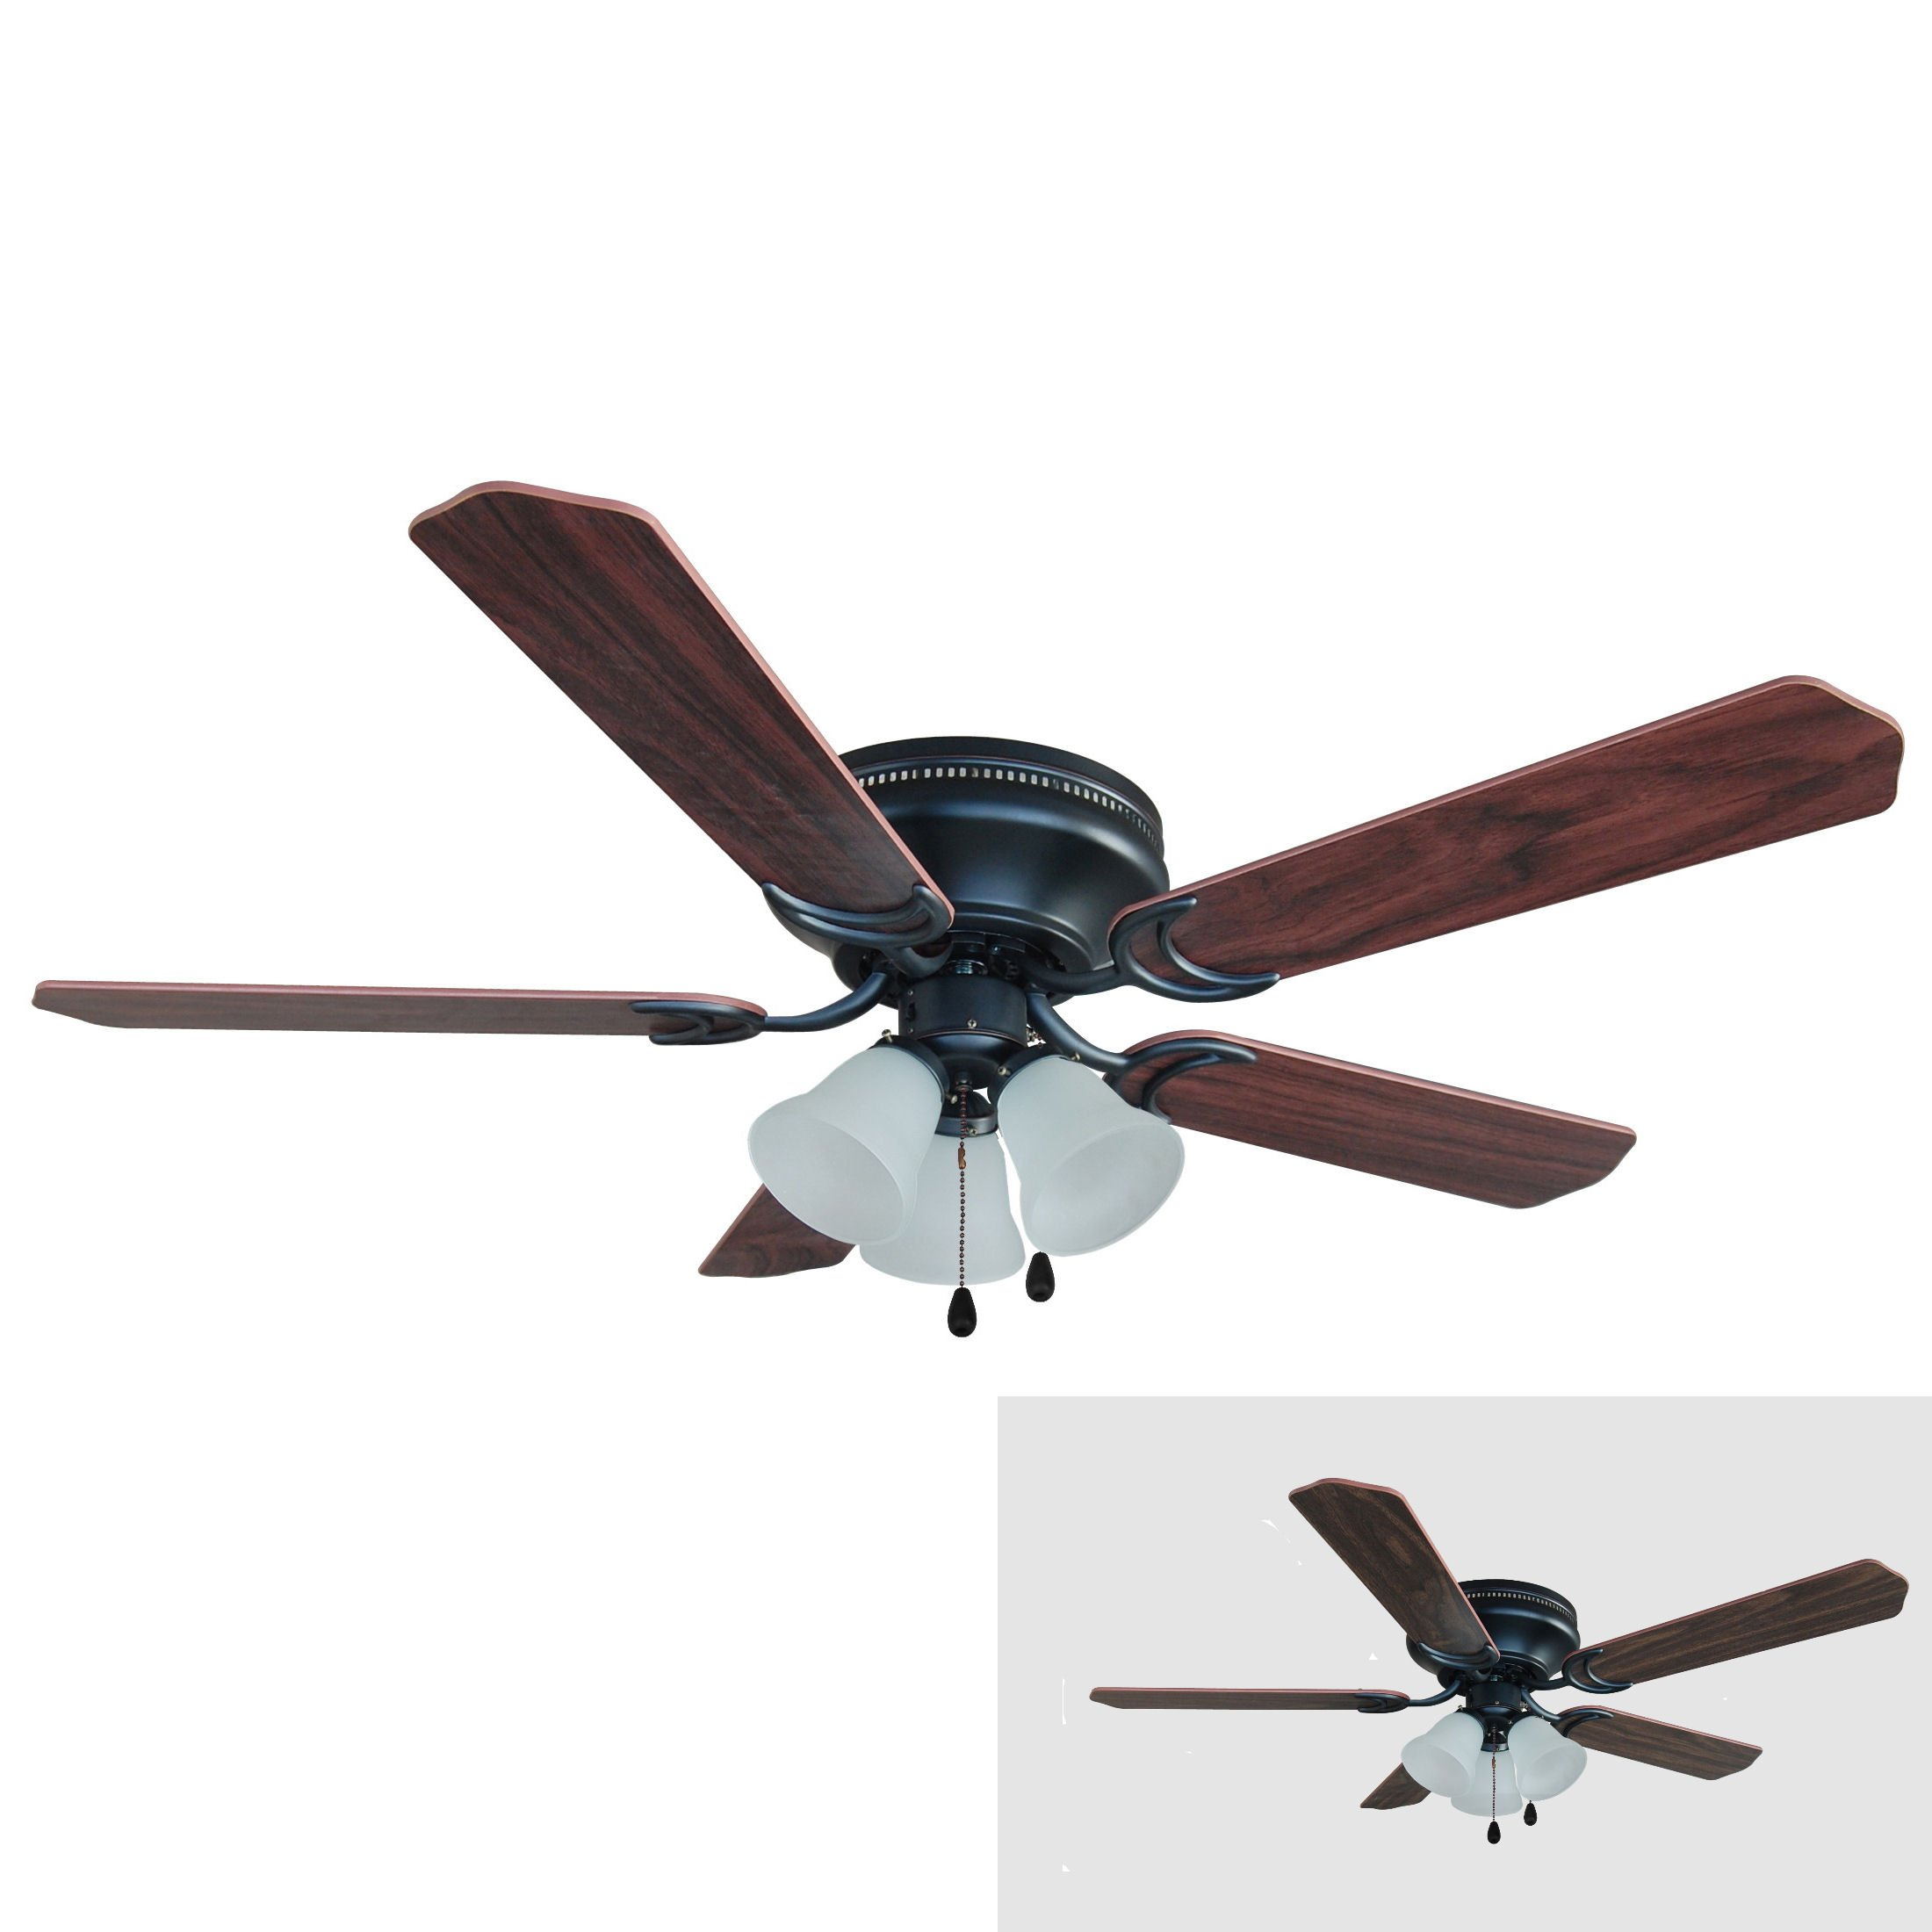 Hardware House 17-4800 Oil Rubbed Bronze 52-Inch Flush Mount Ceiling Fan with Light Kit, Cherry or Walnut Blades